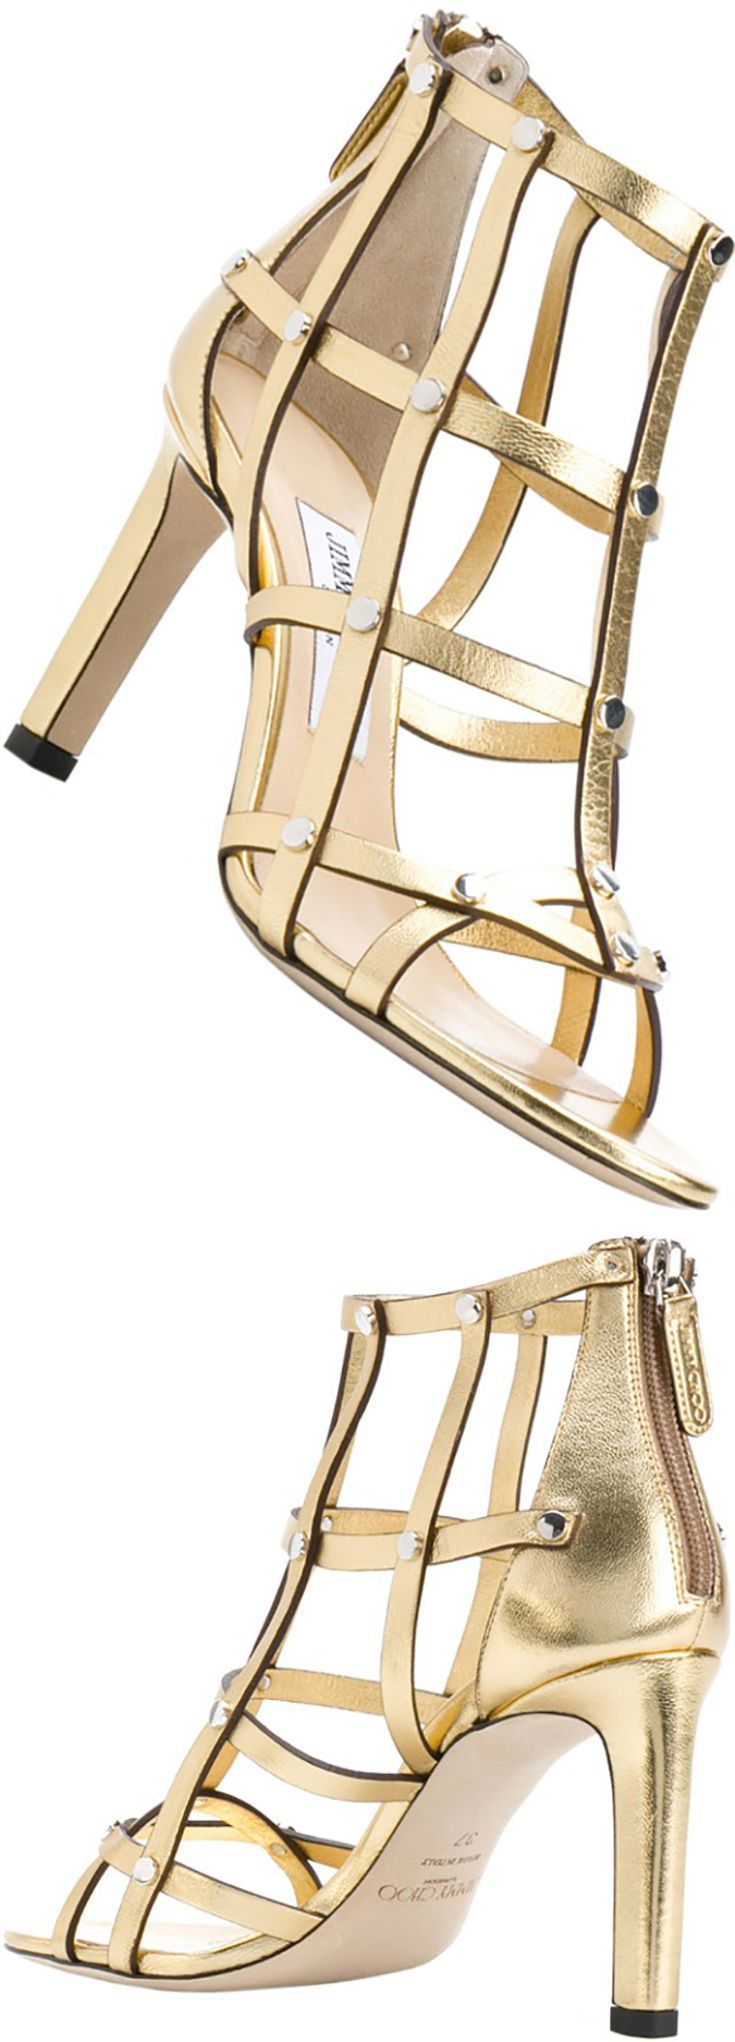 84498270c0f Jimmy Choo Tina 85 metallic leather sandals Channel a luxurious Roman vibe  in the Tina 85 sandals from Jimmy Choo with their gold metallic leather  crafting.